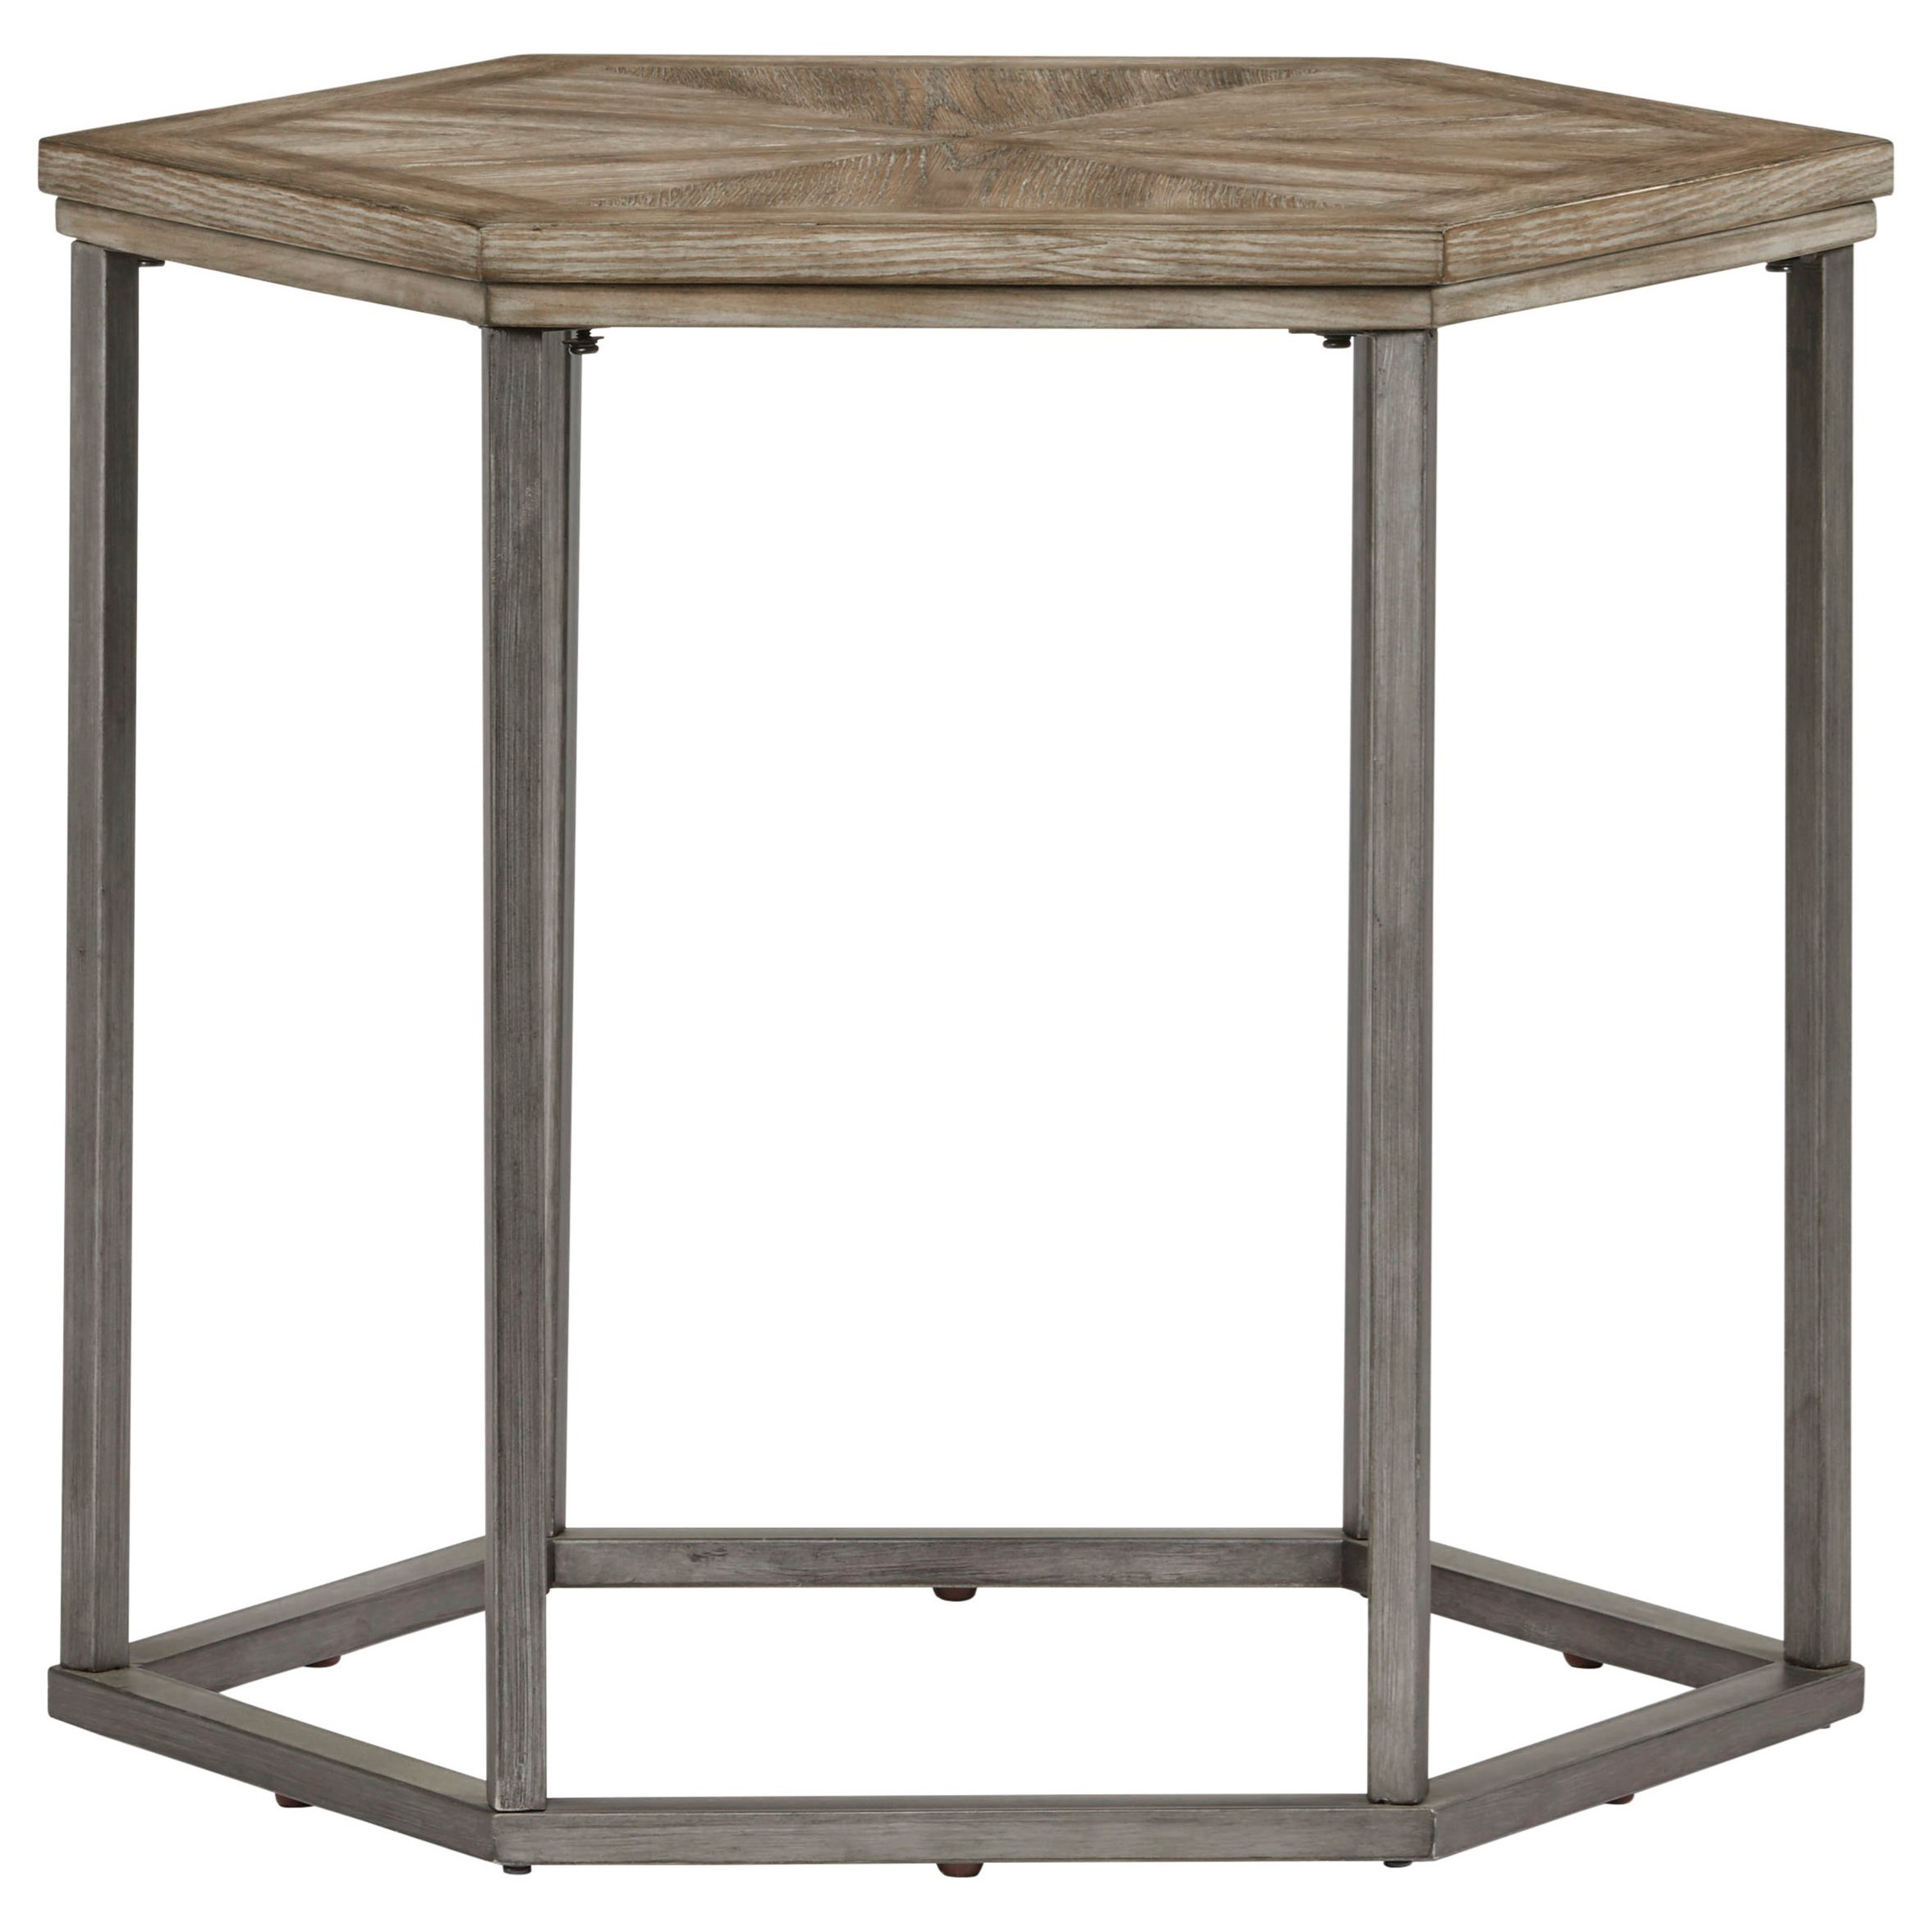 Adison Cove Hexagon End Table by Progressive Furniture at Catalog Outlet